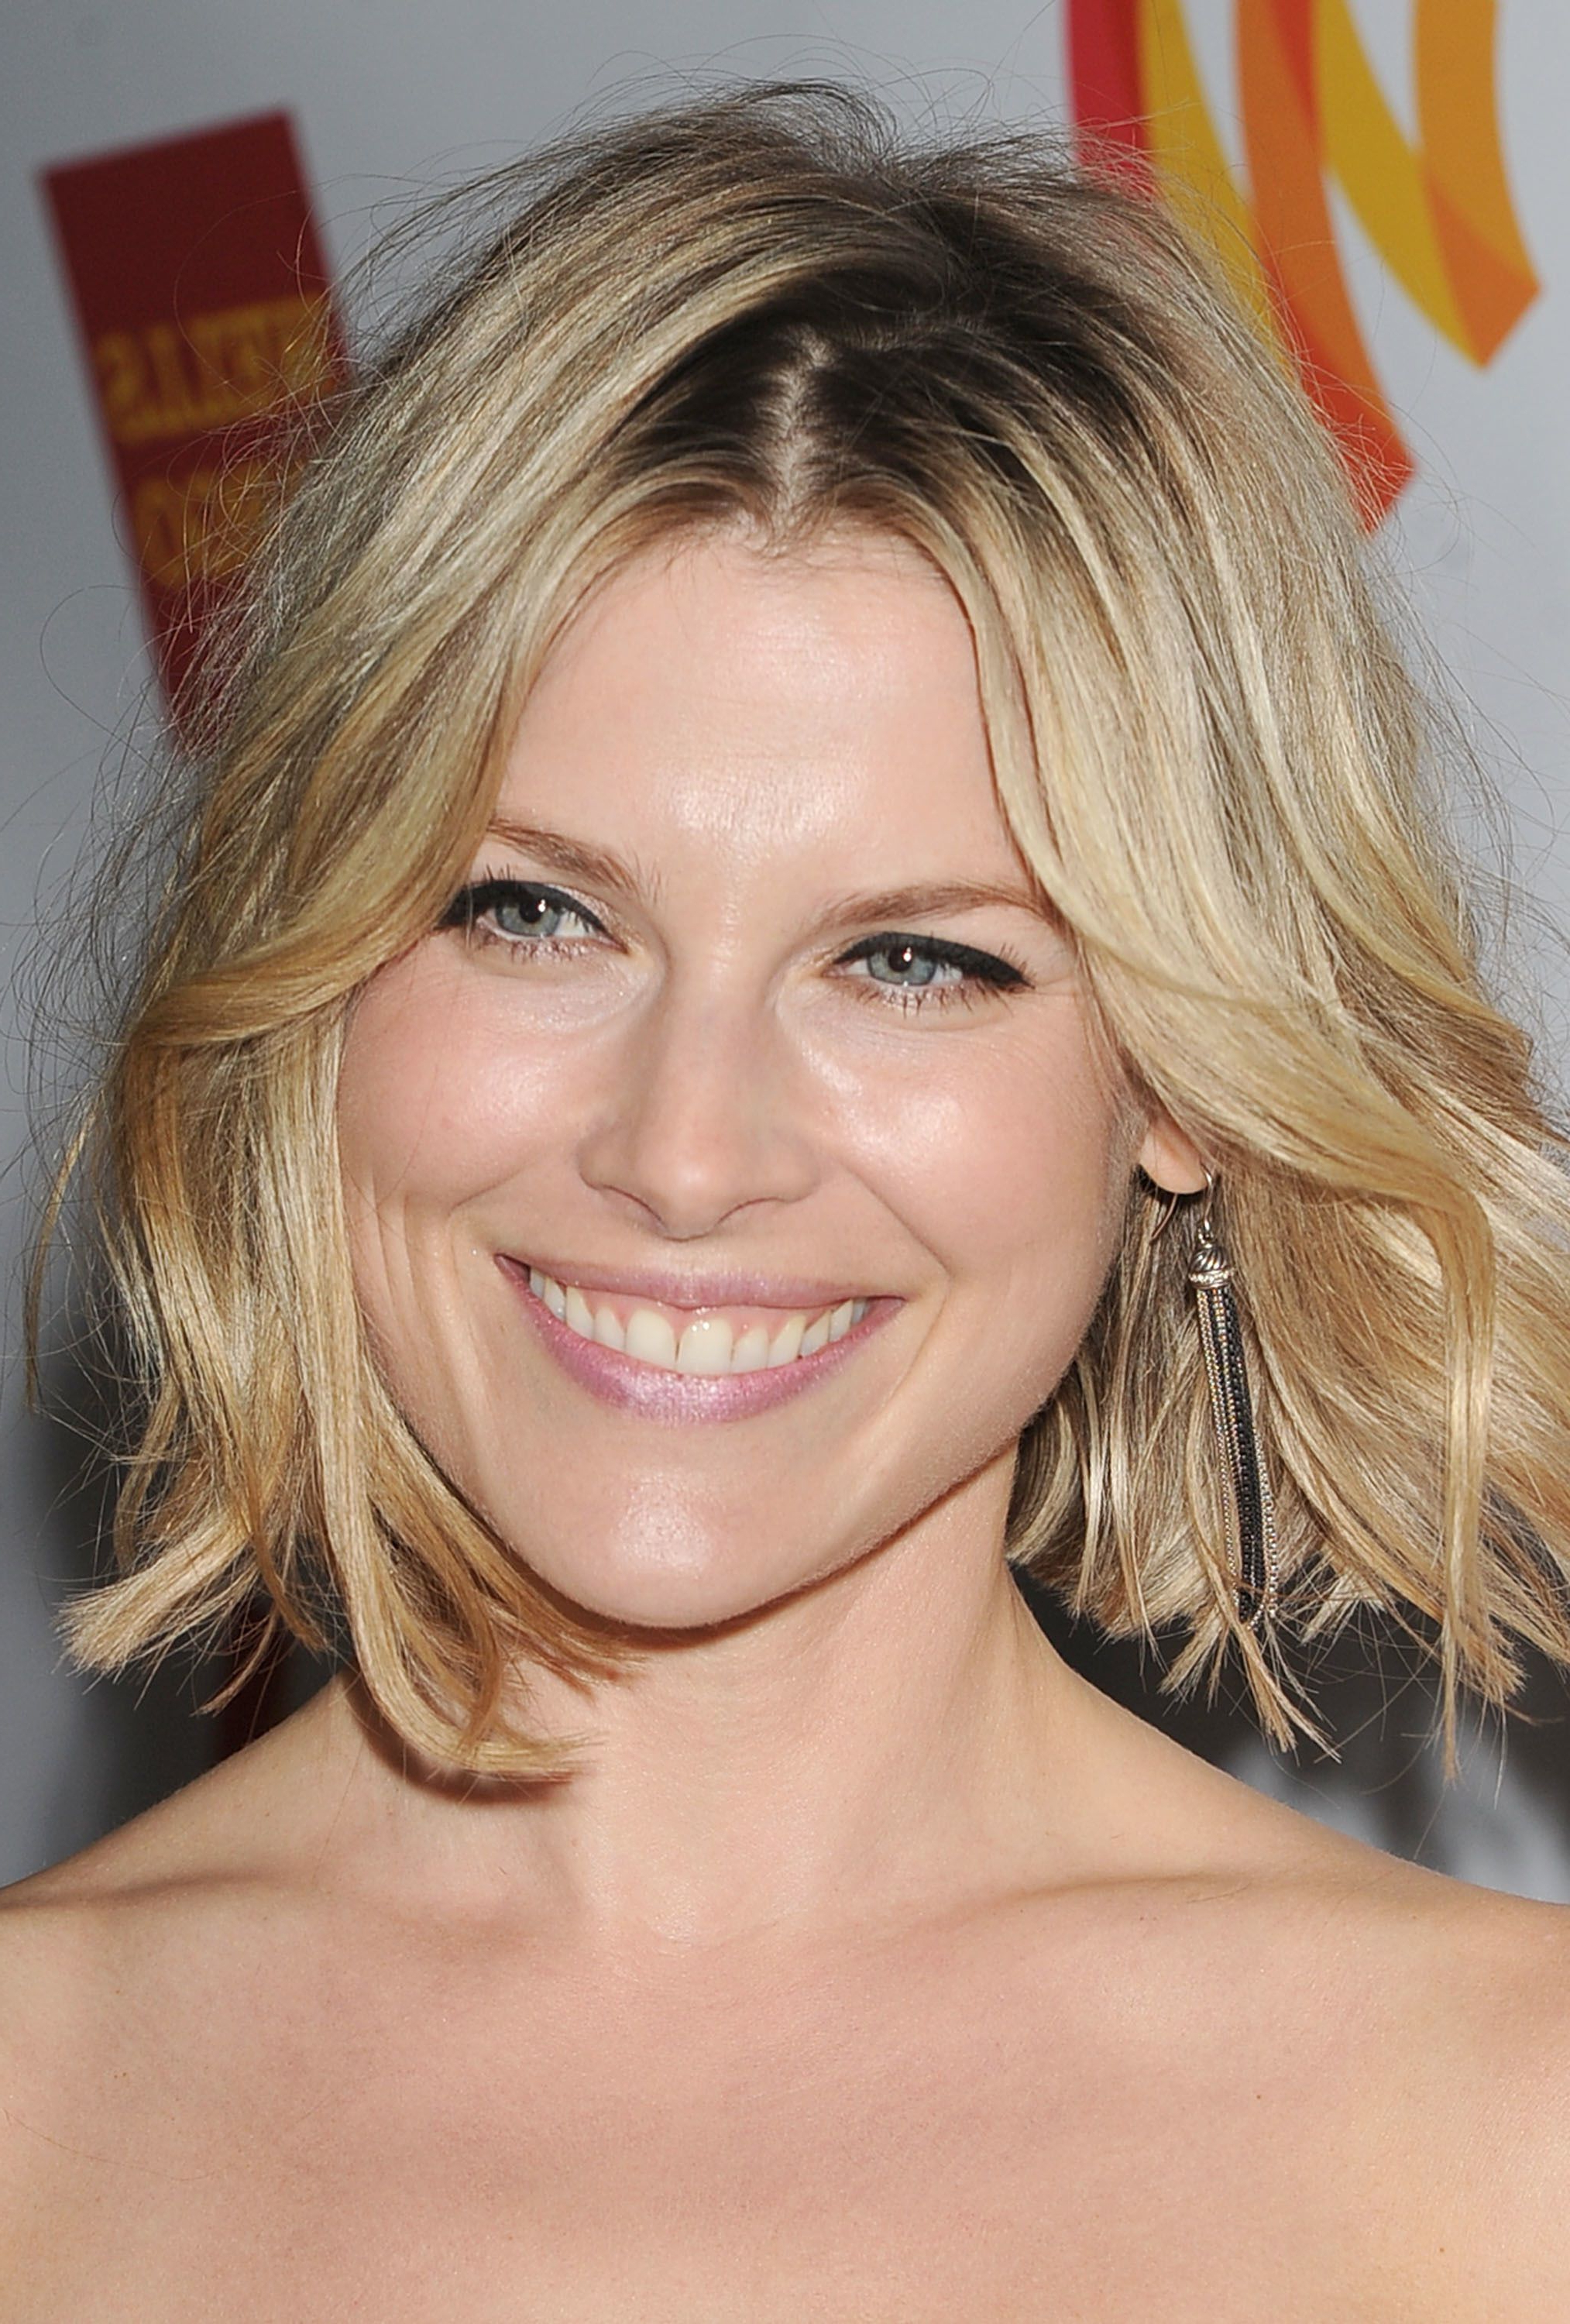 22 Inspiring Short Haircuts For Every Face Shape For Short Haircuts For Thin Faces (View 24 of 25)